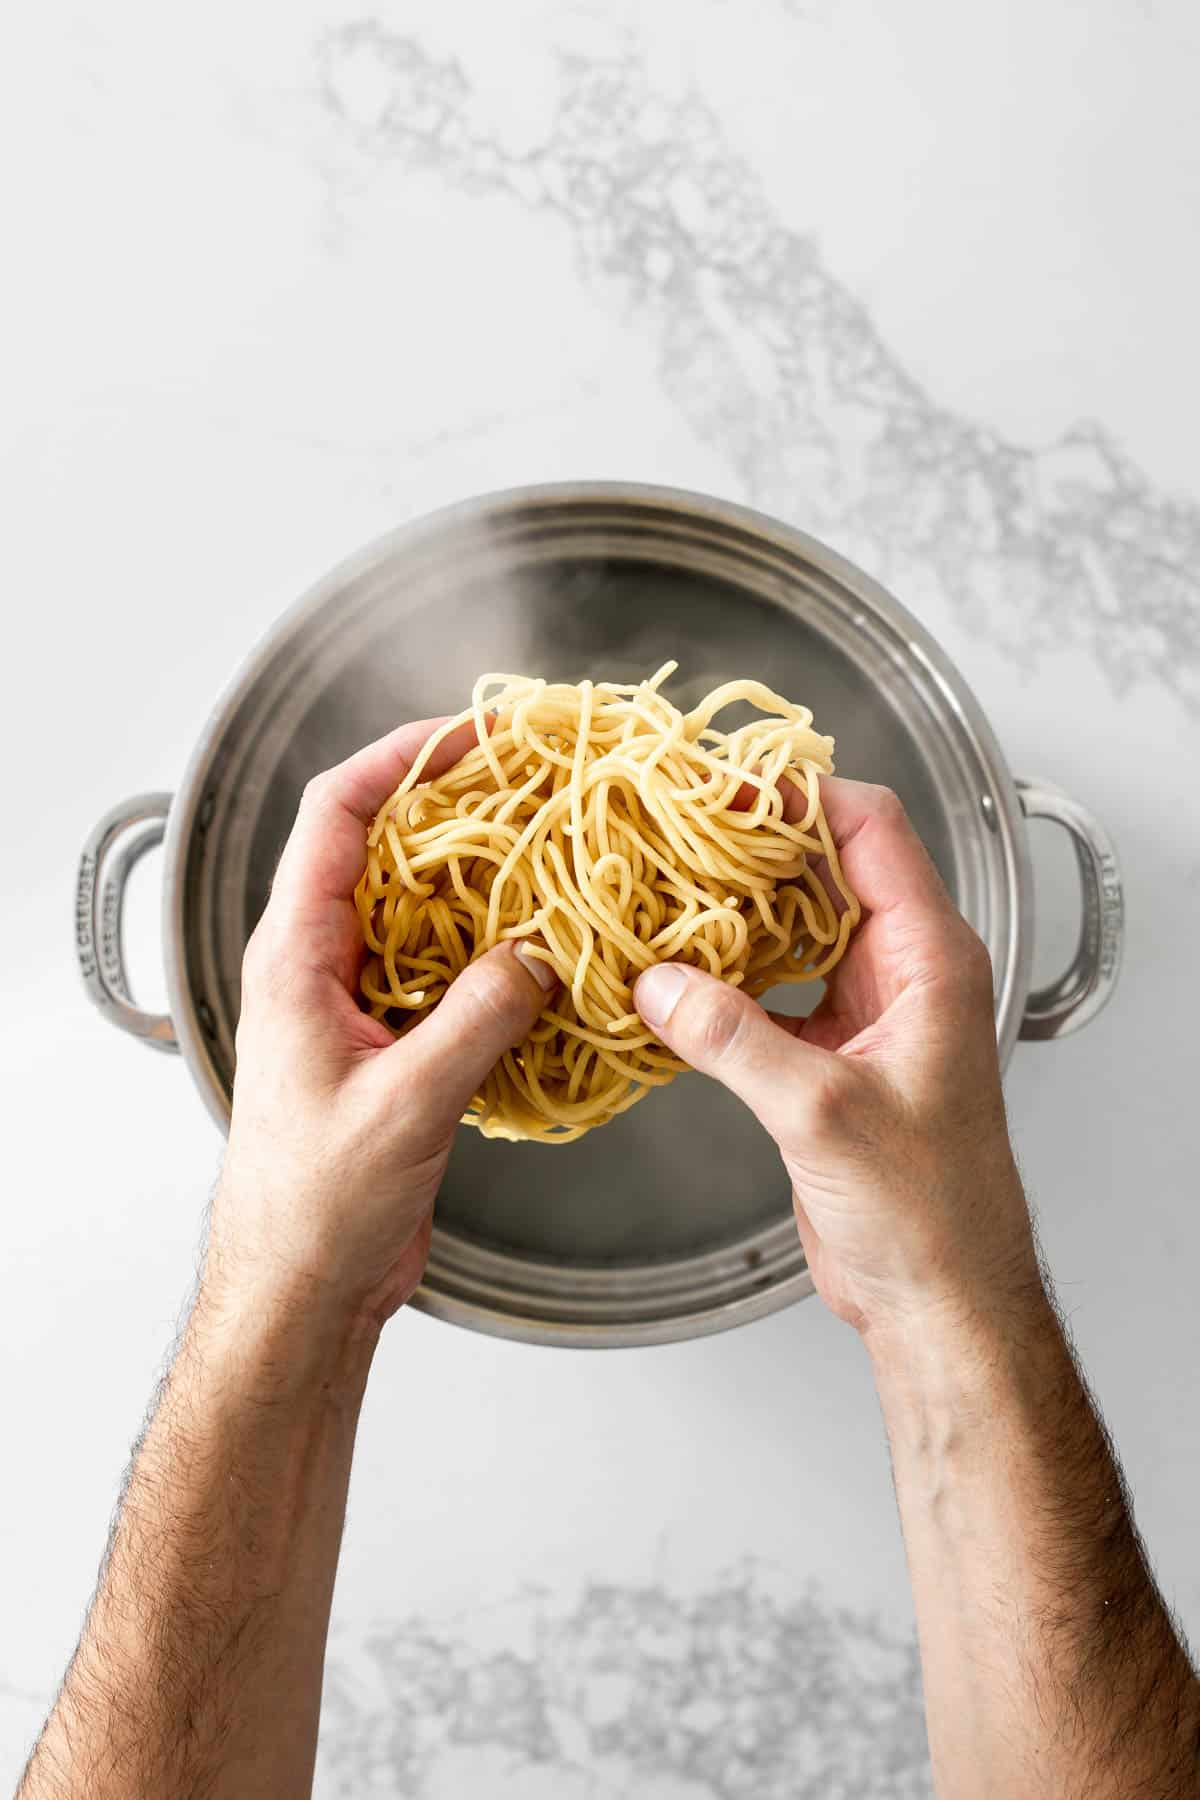 Hands holding fresh pasta above a pot of water